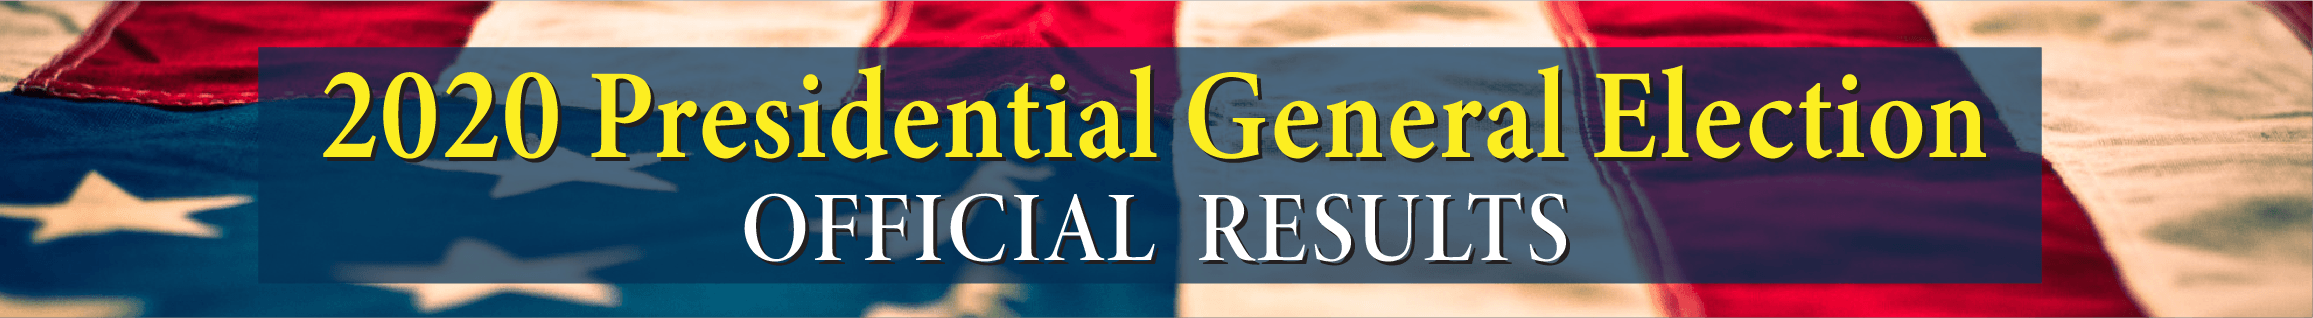 2020 General Official Results banner